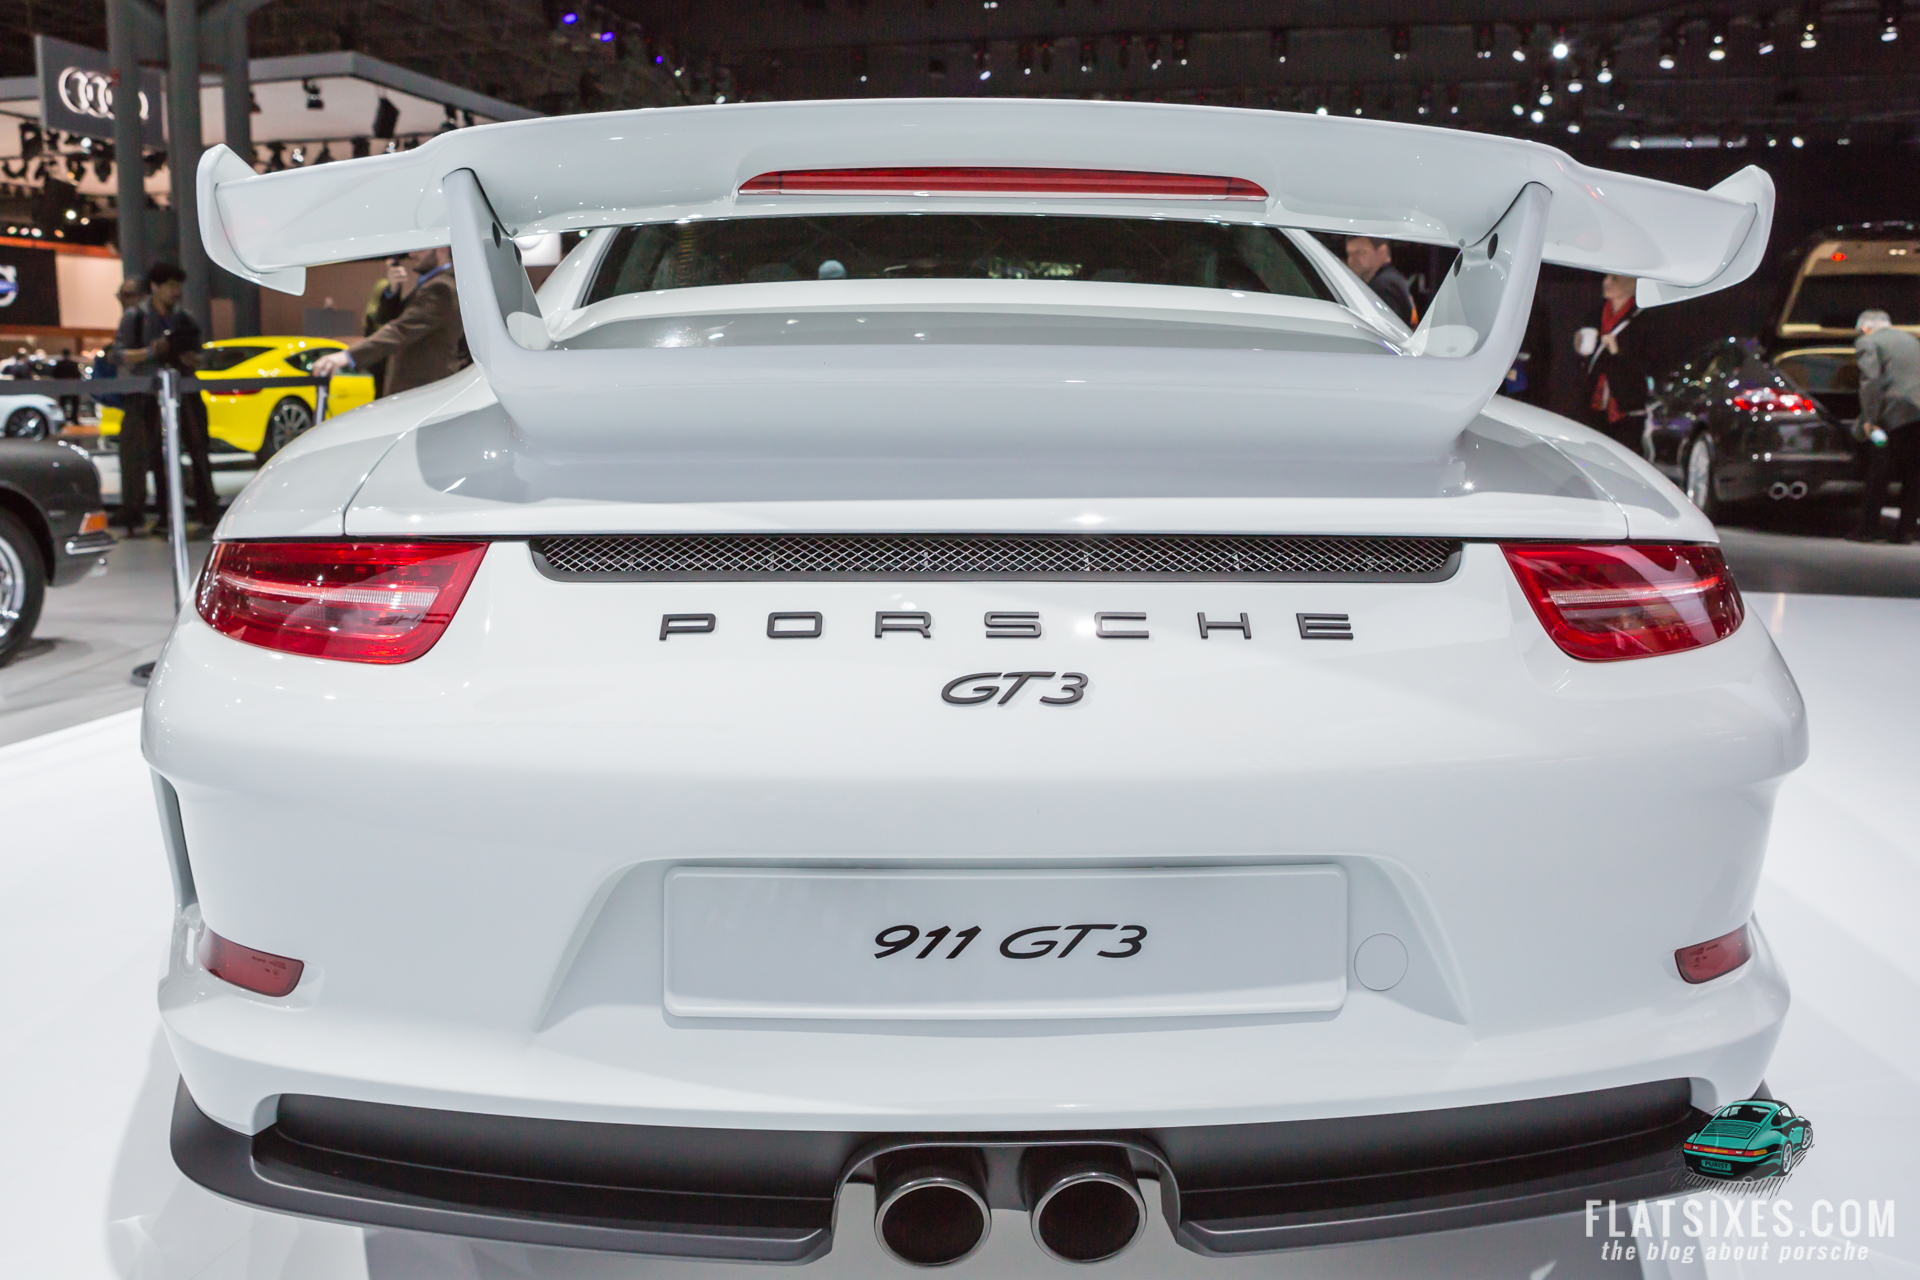 q a with porsche 39 s andreas preuninger on the new 911 gt3 flatsixes. Black Bedroom Furniture Sets. Home Design Ideas